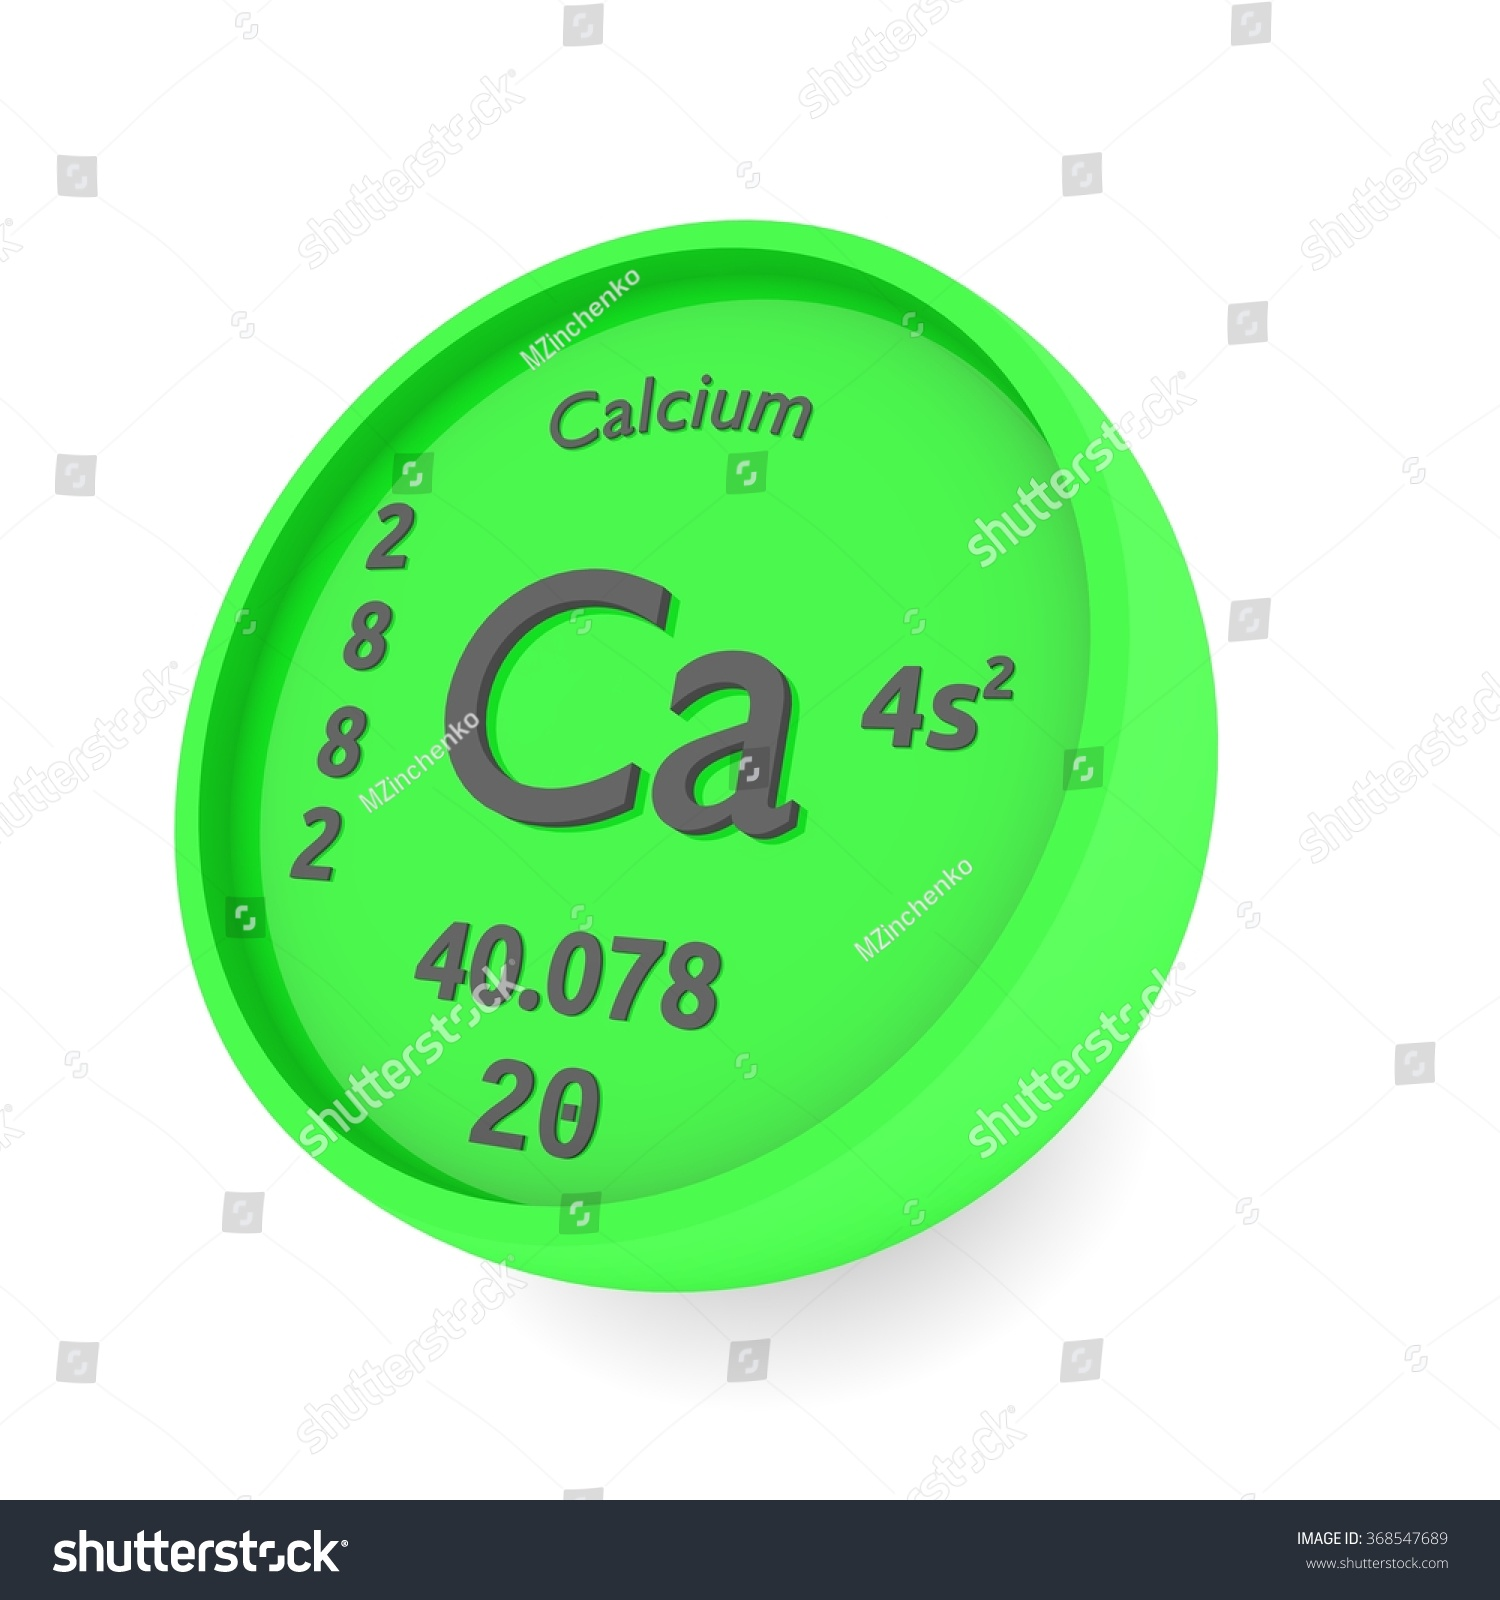 Calcium chemical element sin periodic table stock illustration calcium chemical element sin in periodic table gamestrikefo Images